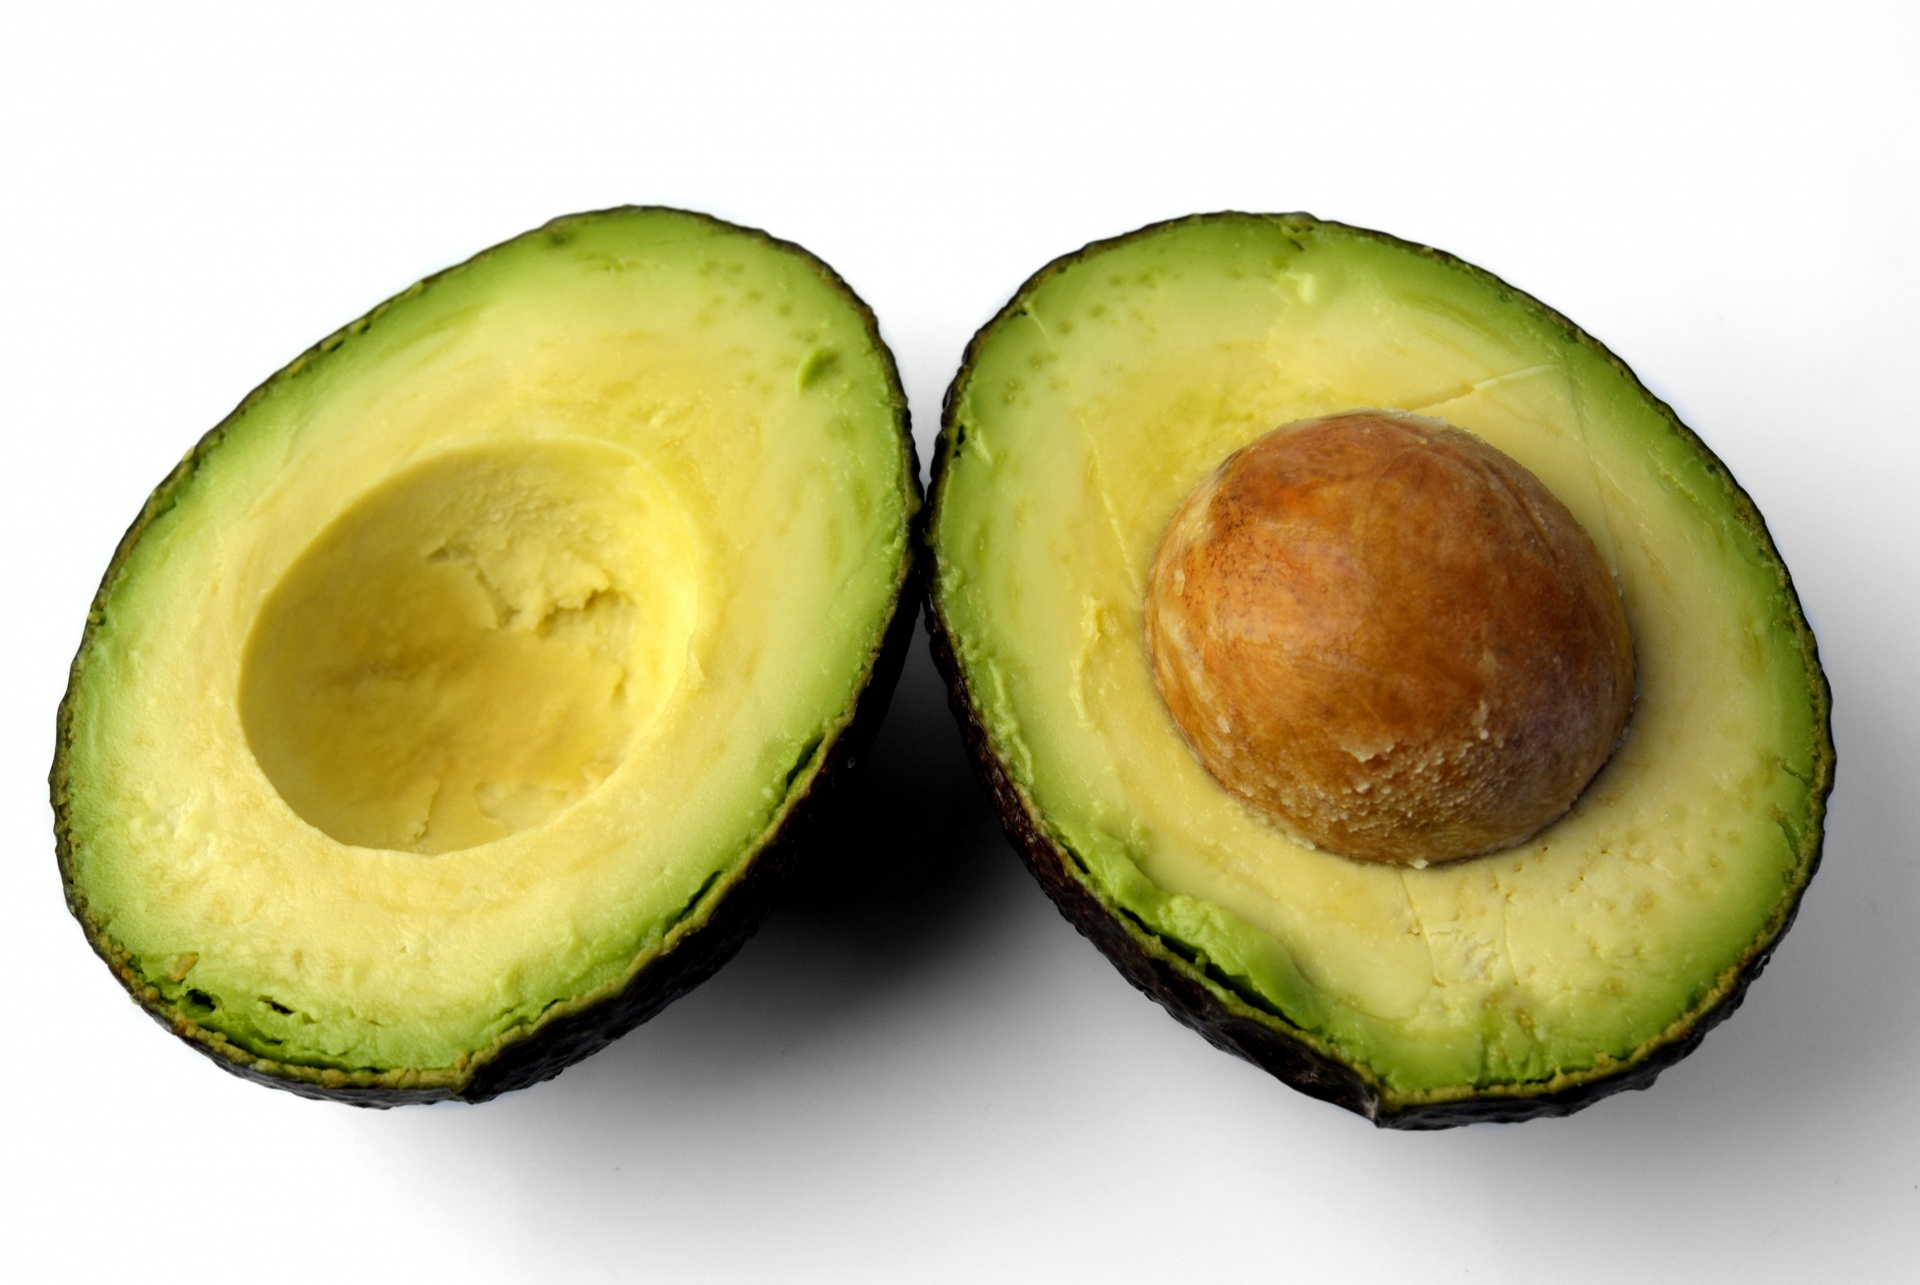 Four great ways to add Avocado to your meal